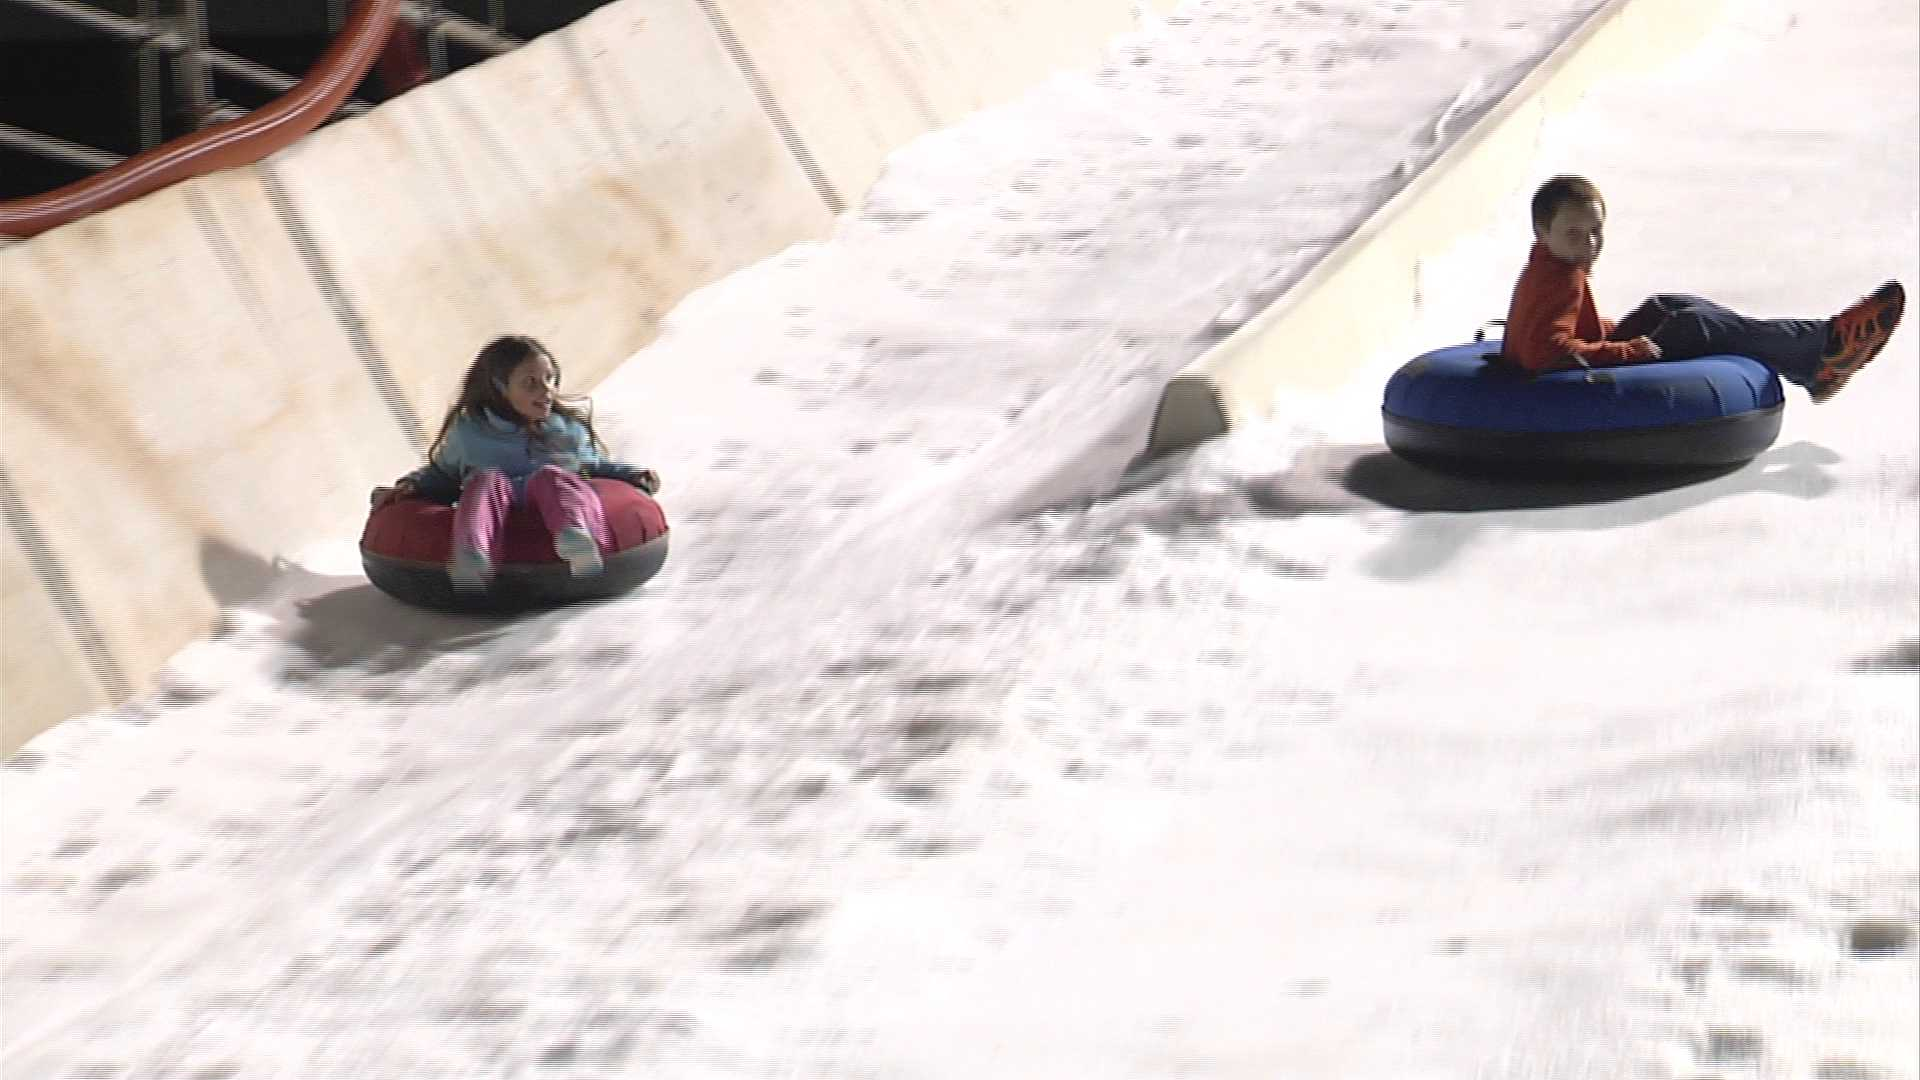 picture of people tubing in snow at bricktown ballpark